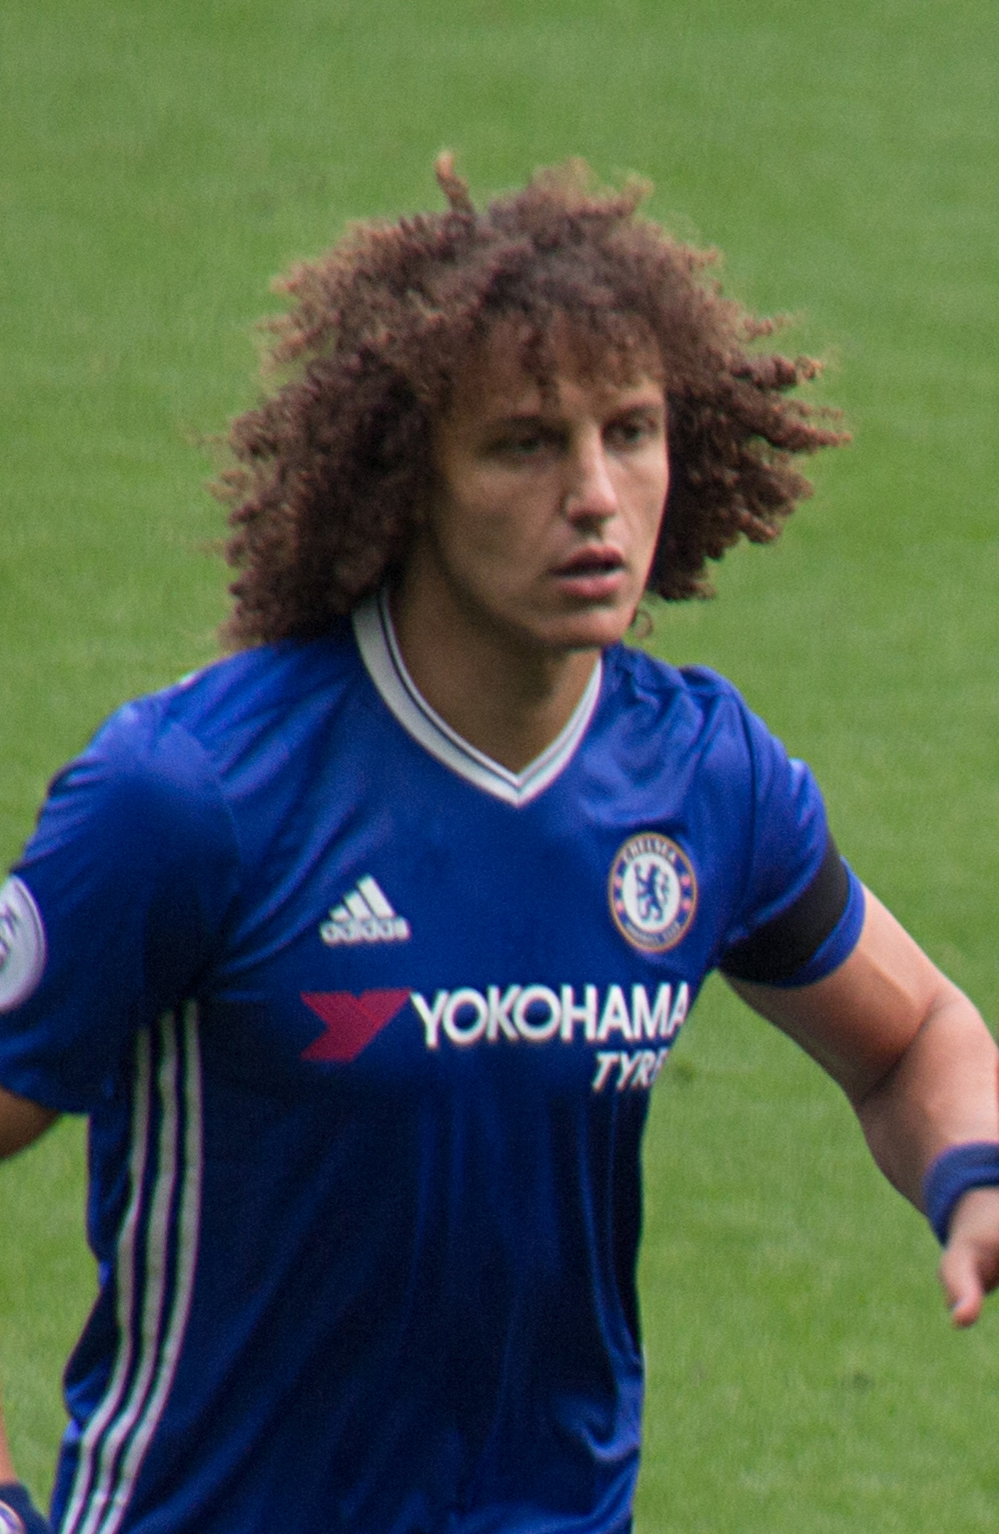 The 31-year old son of father Ladisloa Luiz and mother Regina Luiz David Luiz in 2018 photo. David Luiz earned a 4 million dollar salary - leaving the net worth at 9 million in 2018